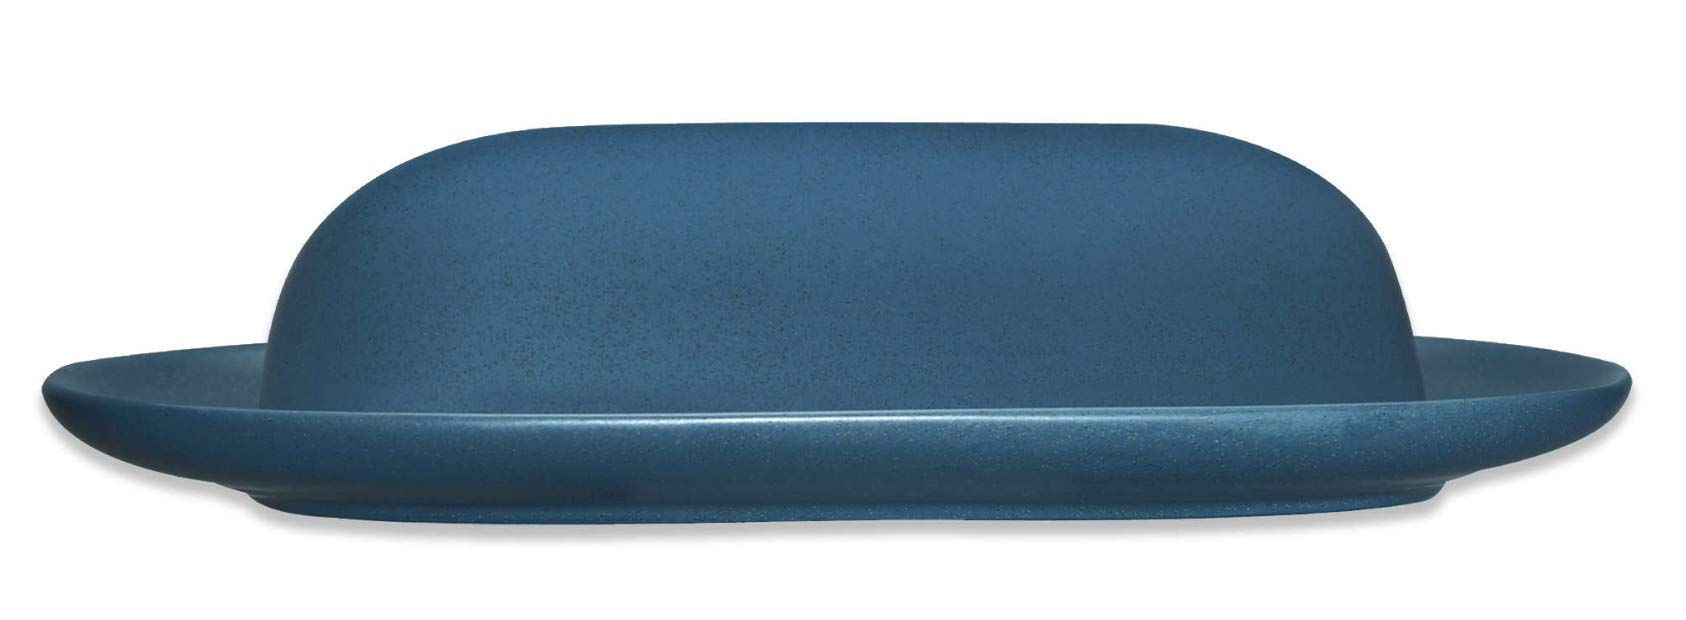 Noritake Colorwave Covered Butter, Blue